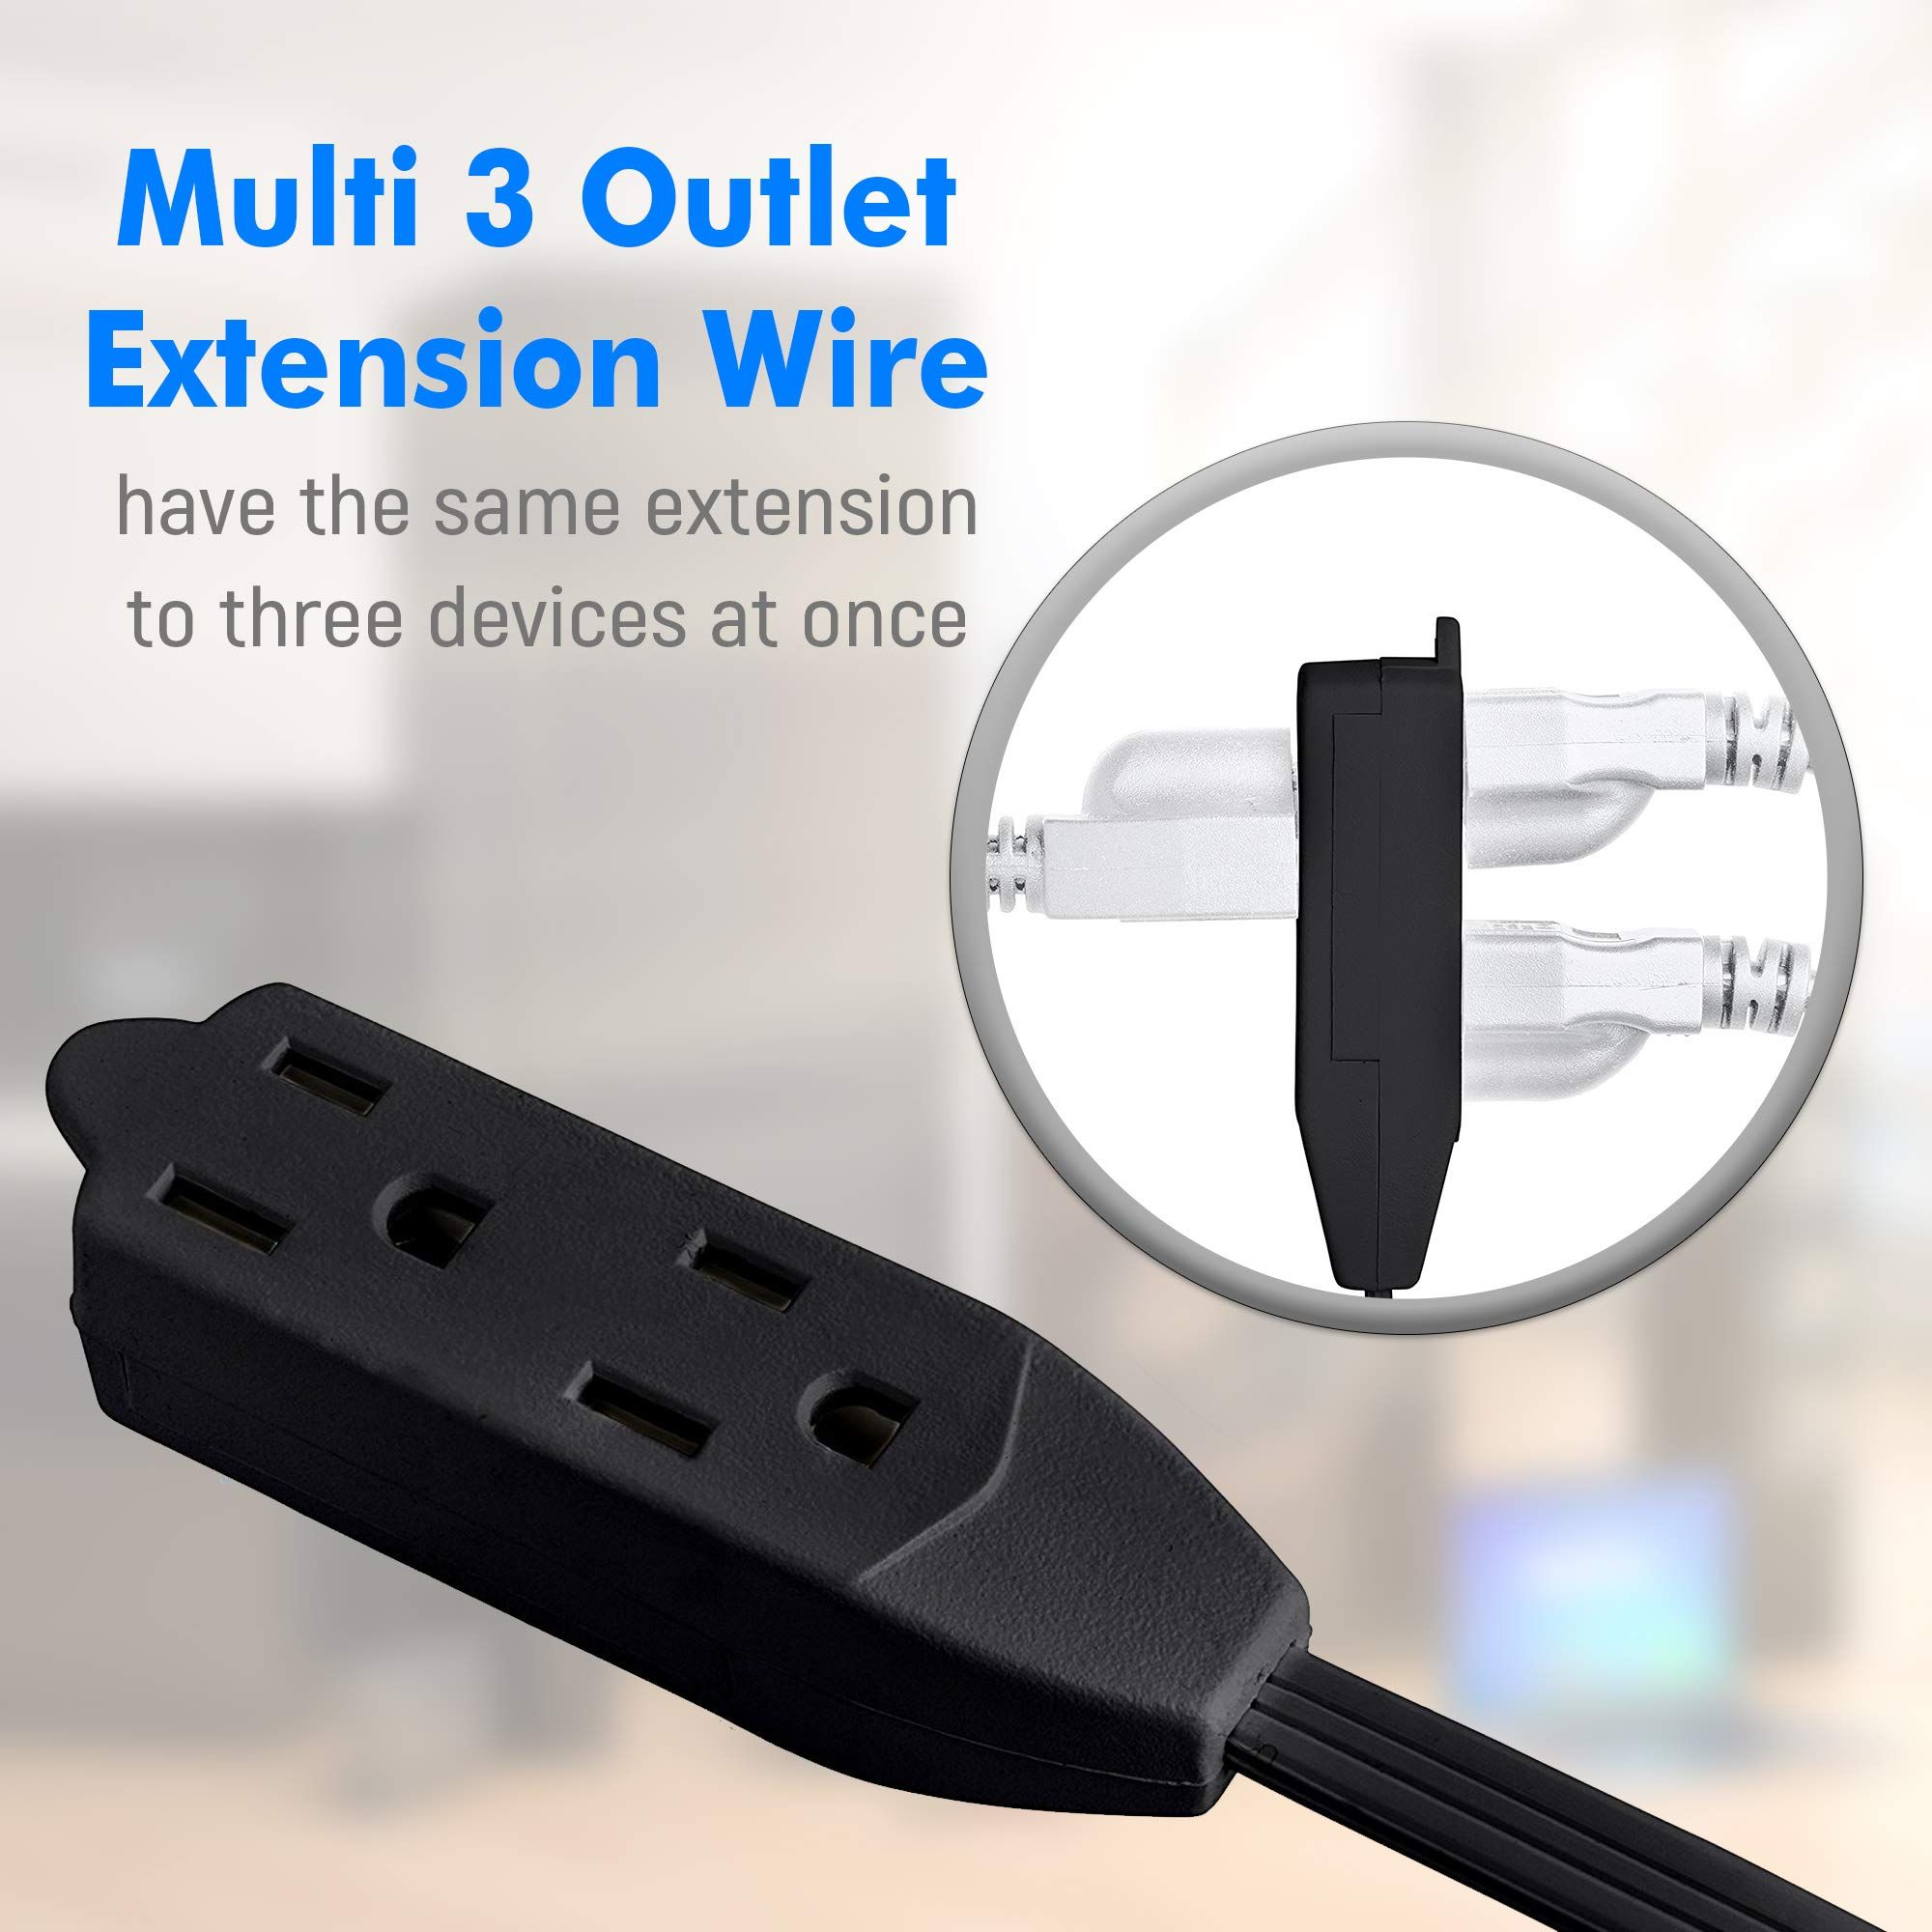 medium resolution of maximm cable 2 ft 360 rotating flat plug extension cord wire 16 awg 24 inch multi 3 outlet extension wire 3 prong grounded wire black ul listed